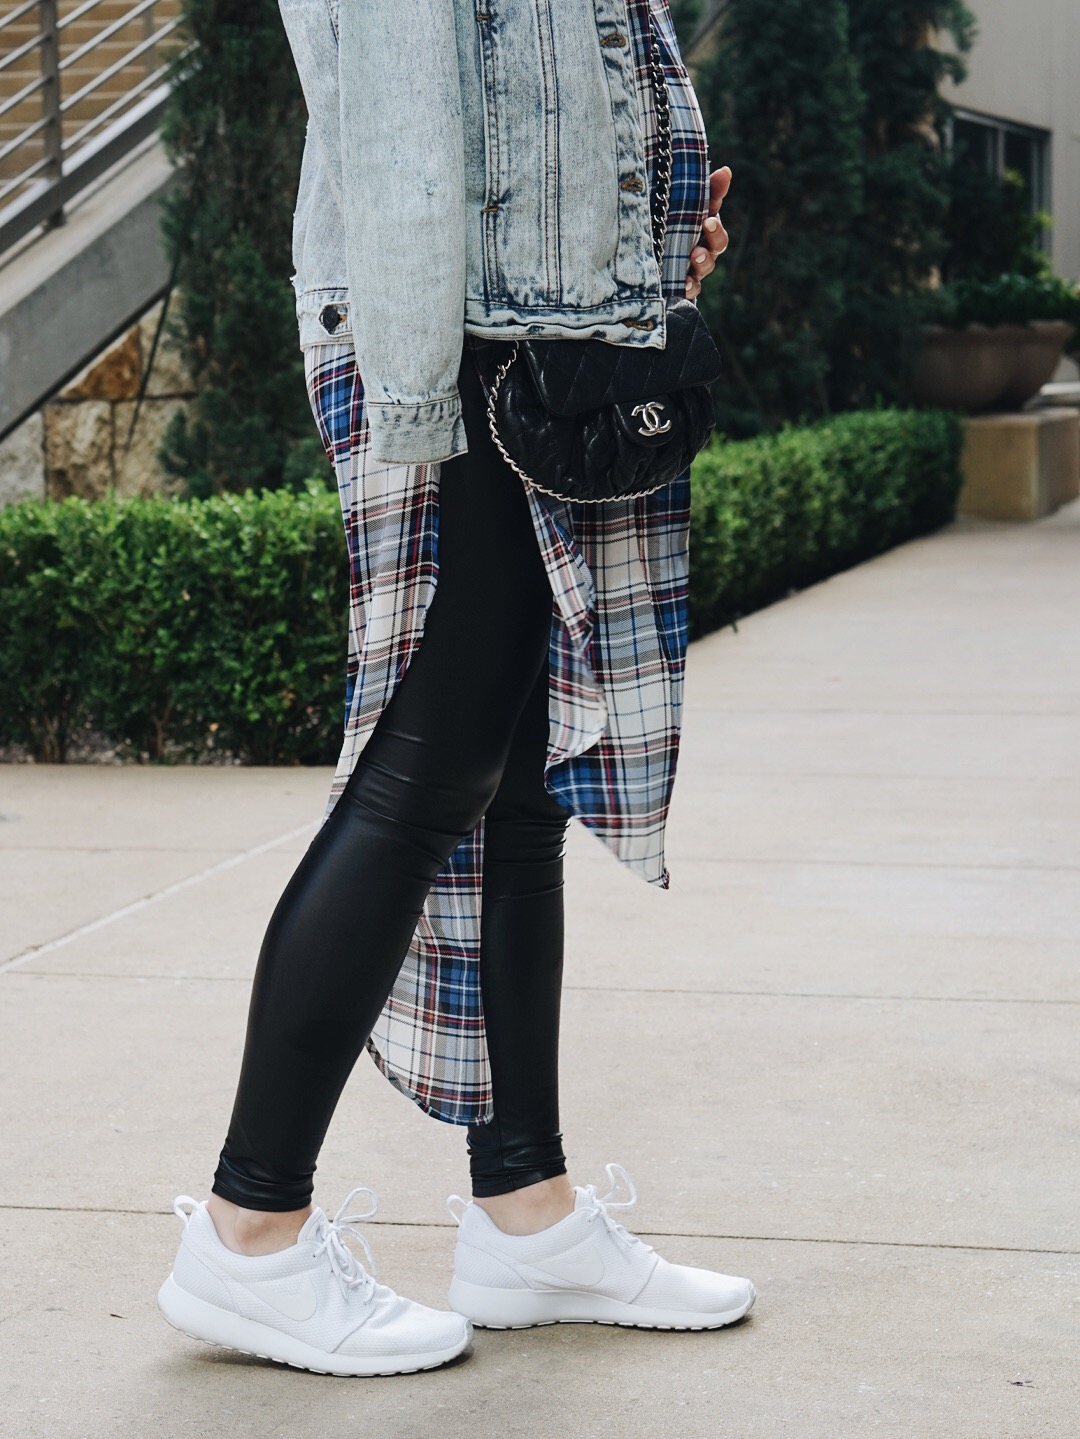 5bf2a70f Monday Blues : Denim and Plaid | Taylor Madu